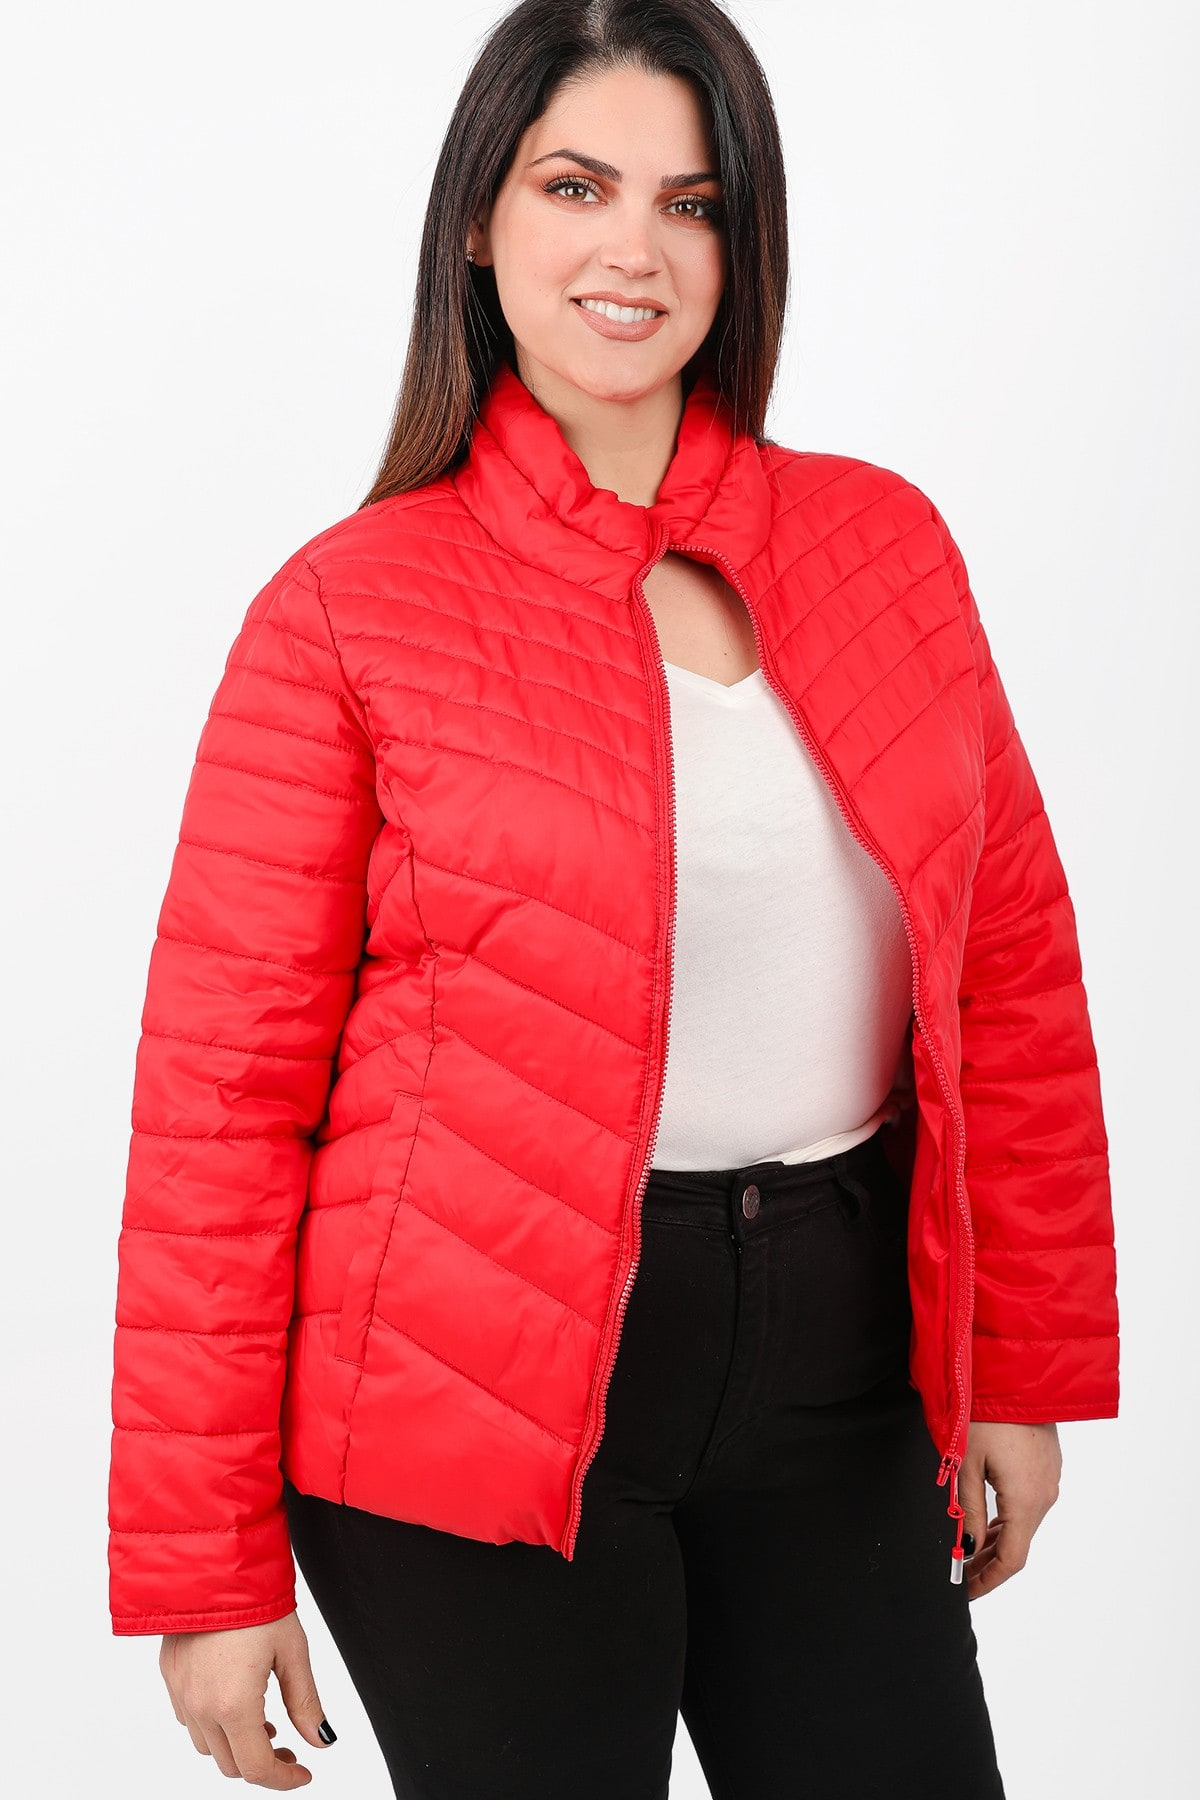 Quilted jacket with zipper